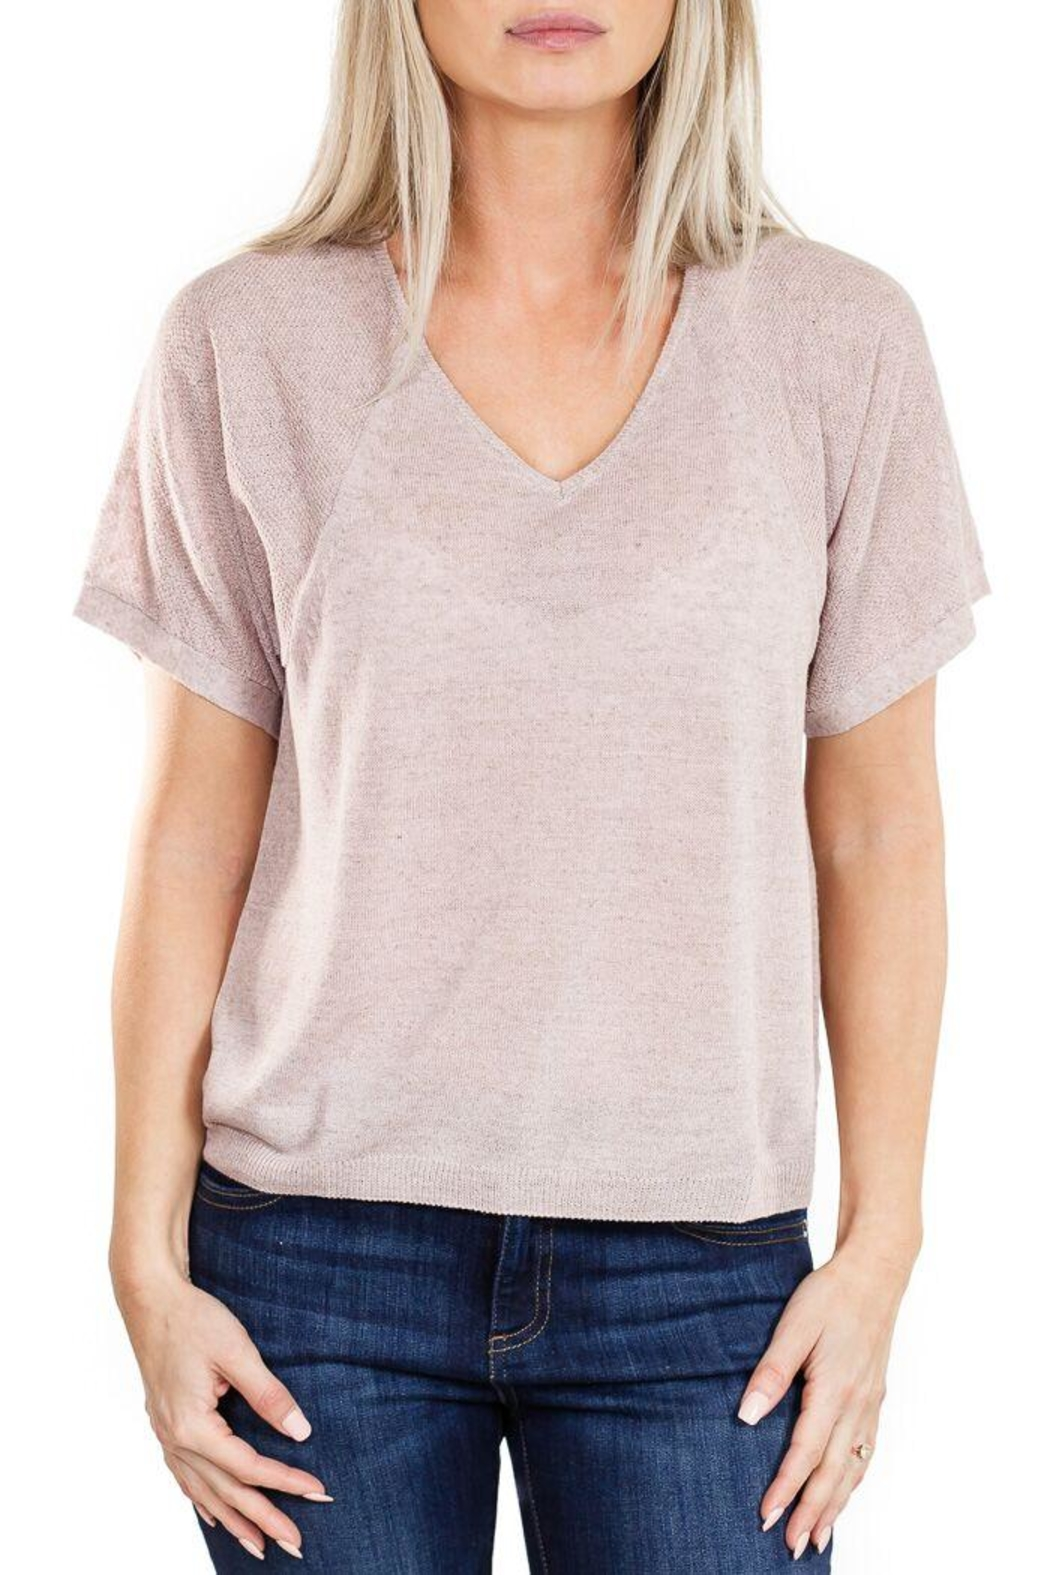 Fine Collection V Neck Sweater - Main Image